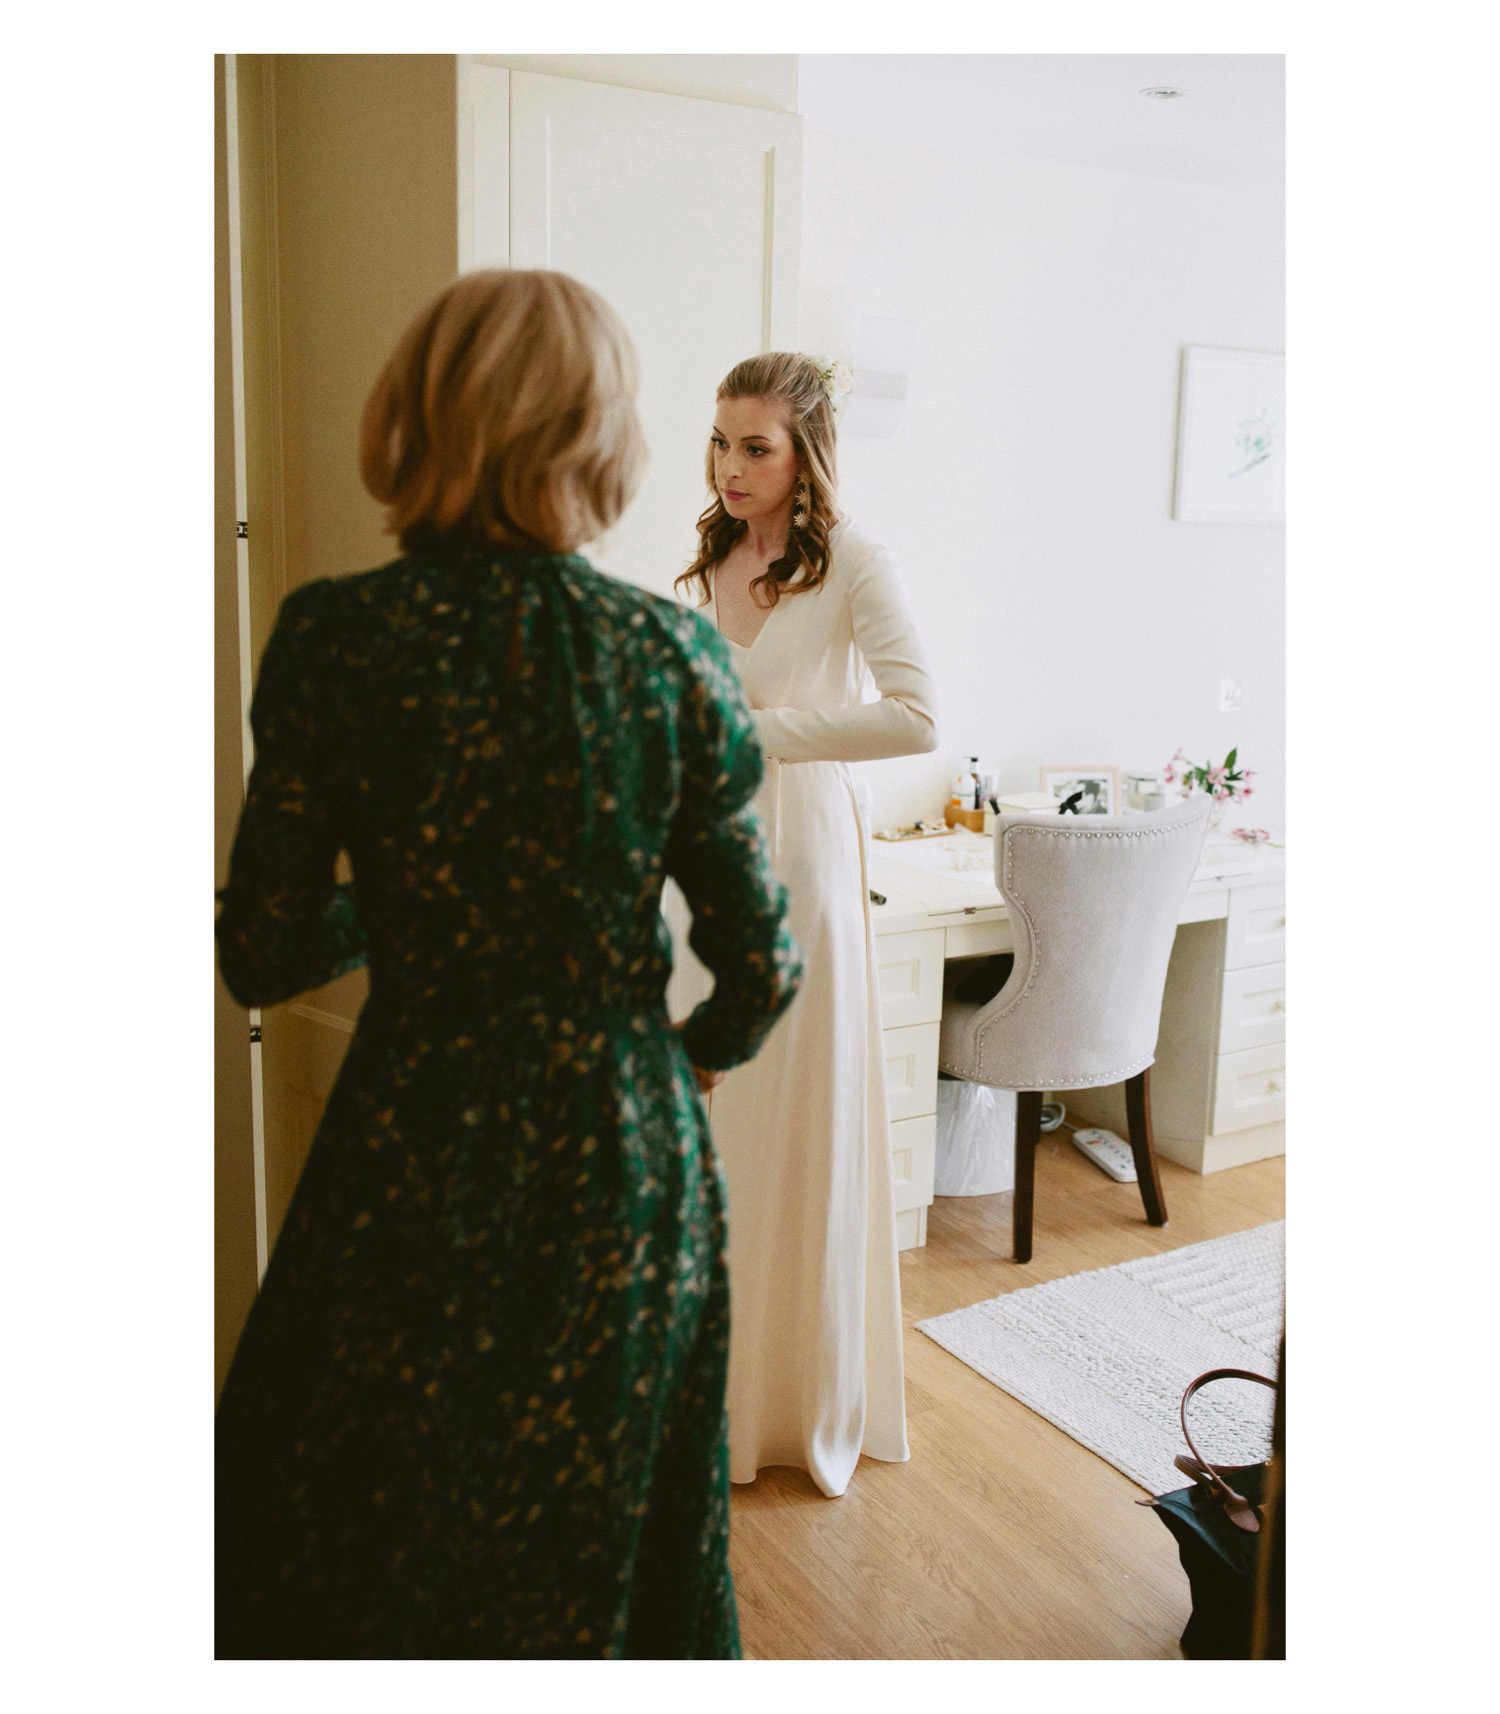 Bride getting ready at in room